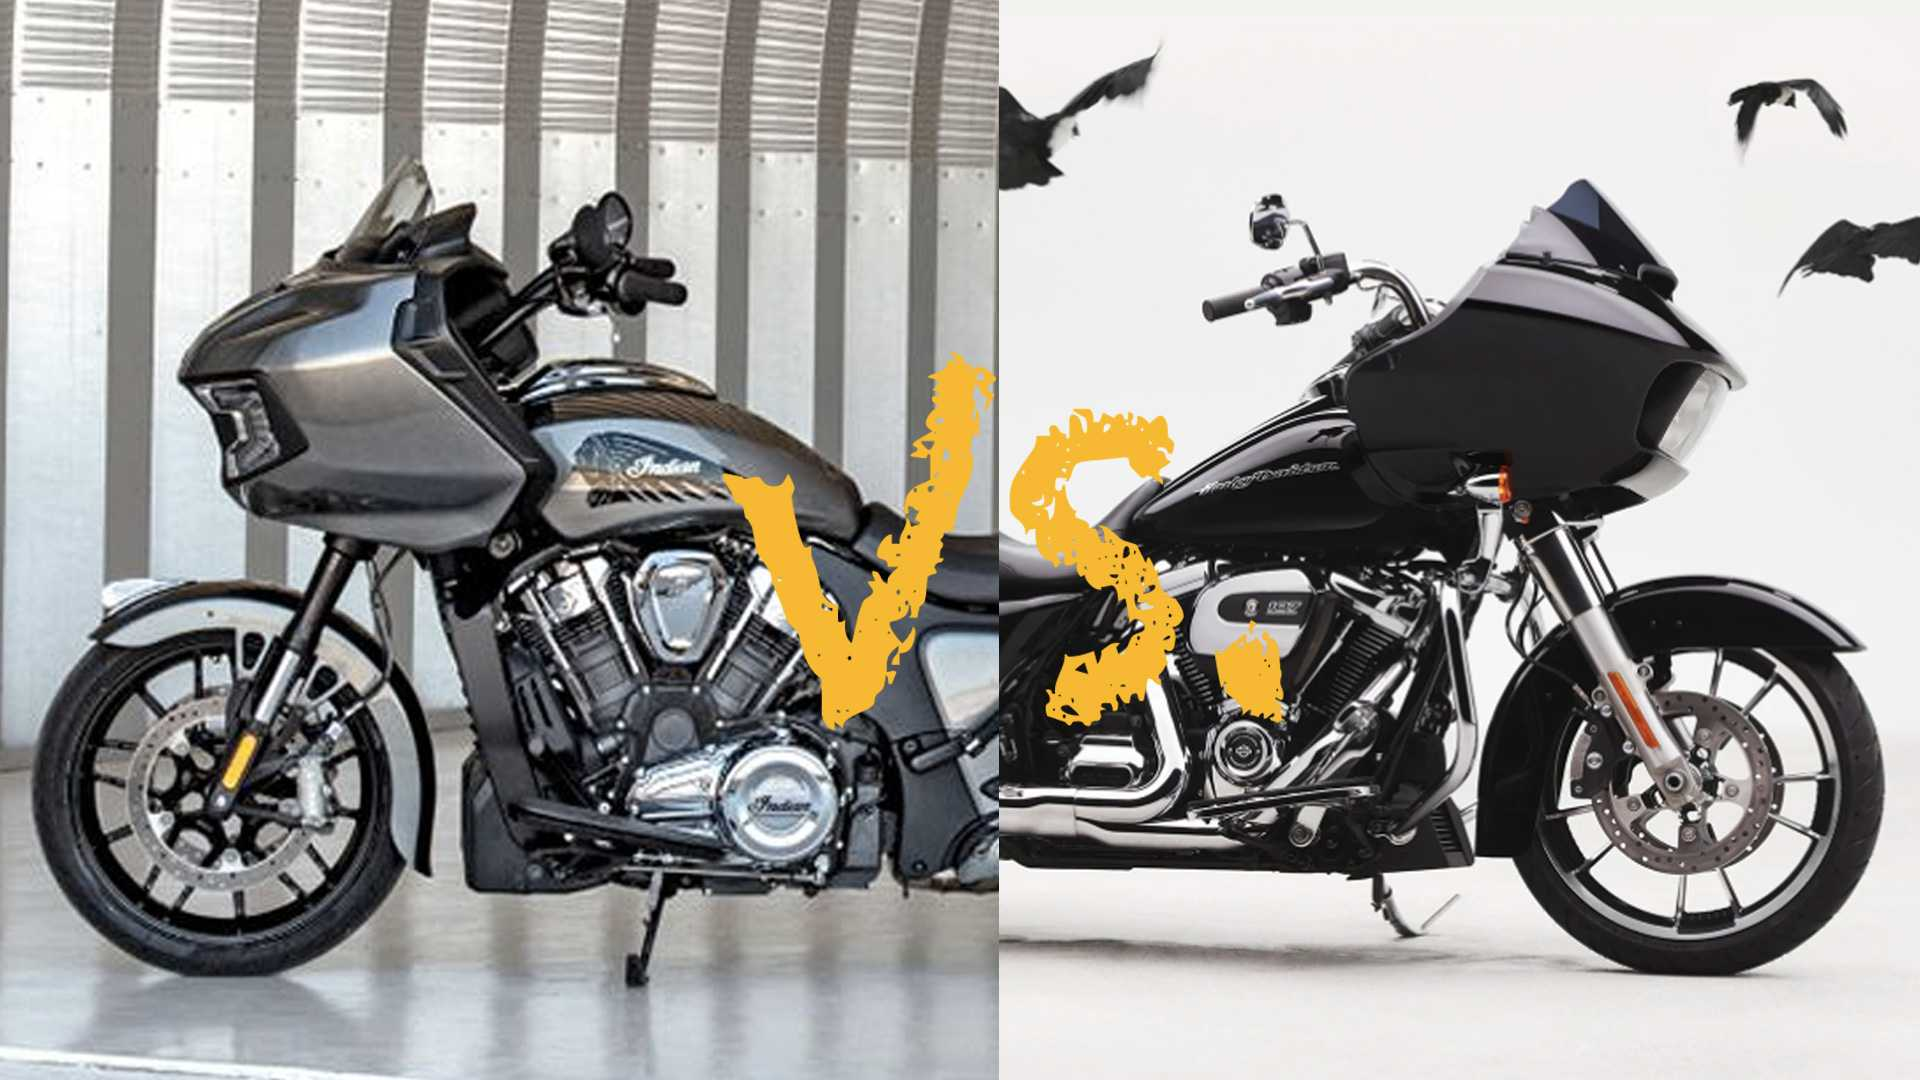 Spec Showdown: Indian Challenger Vs. Harley-Davidson Road Glide